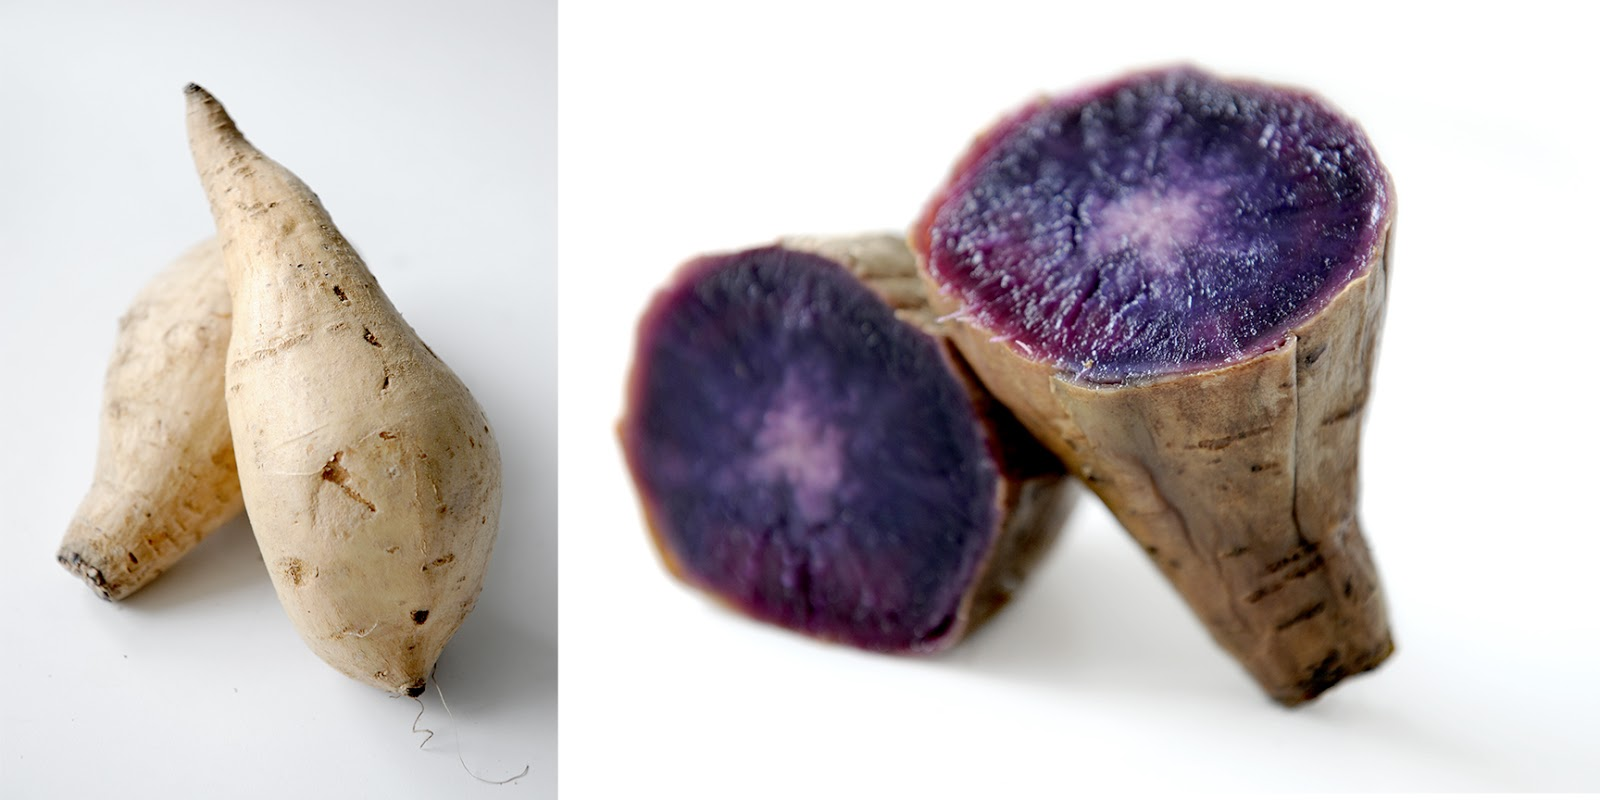 how to cook purple yam in oven